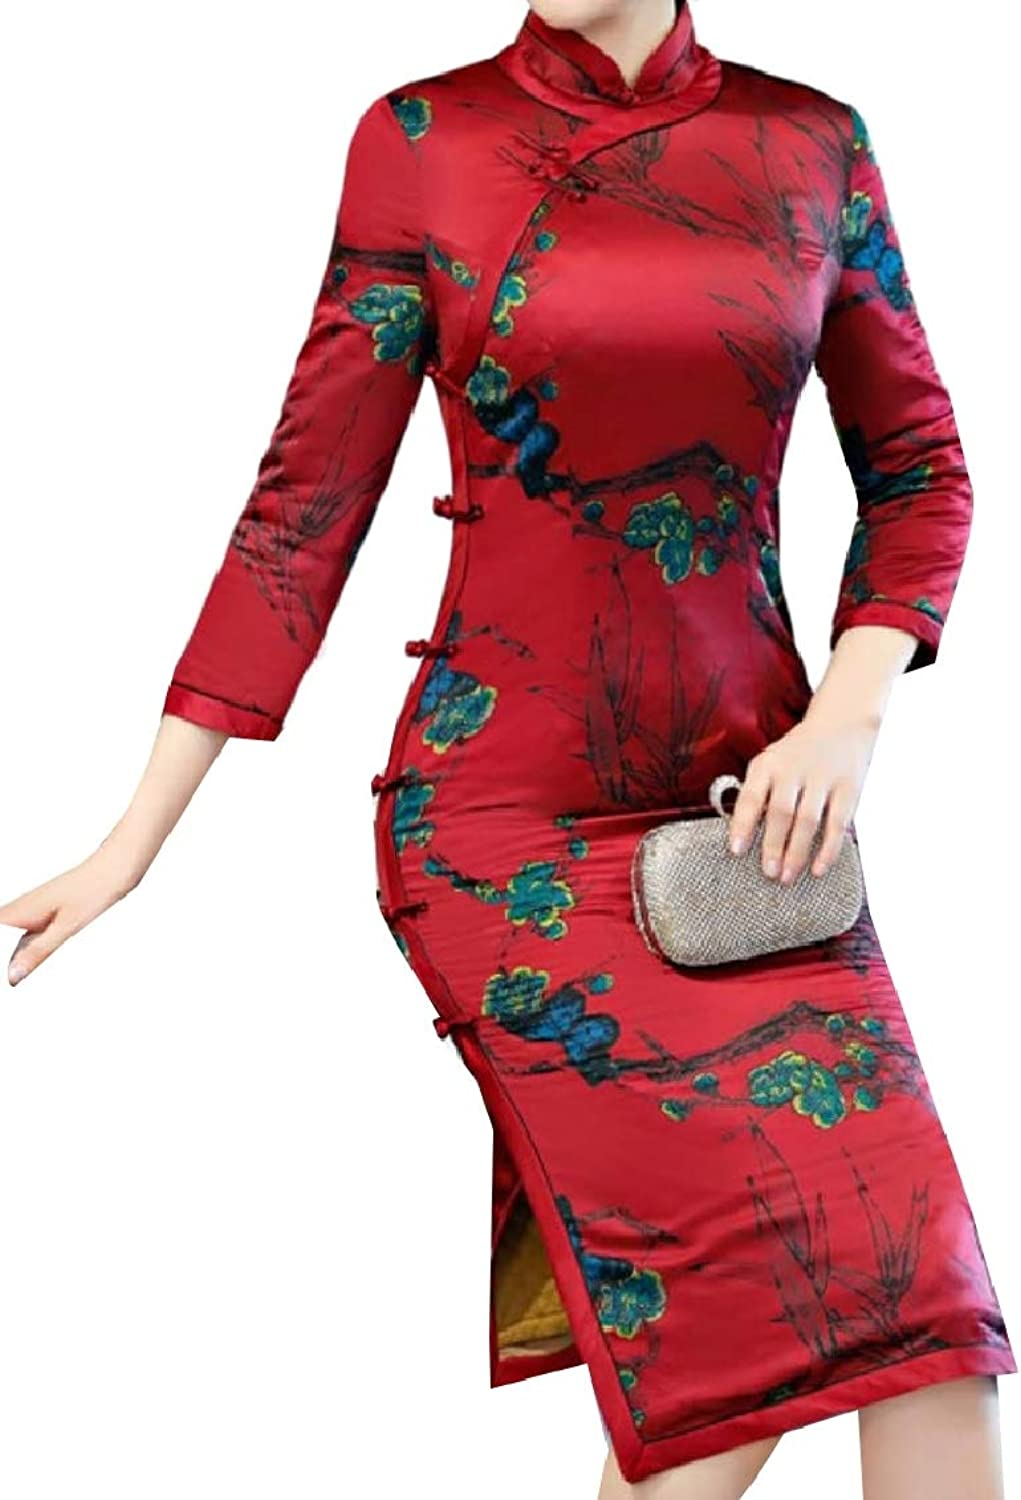 Coolhere Women Fashion Floral Printed Party Bodycon Dress Photography Dress